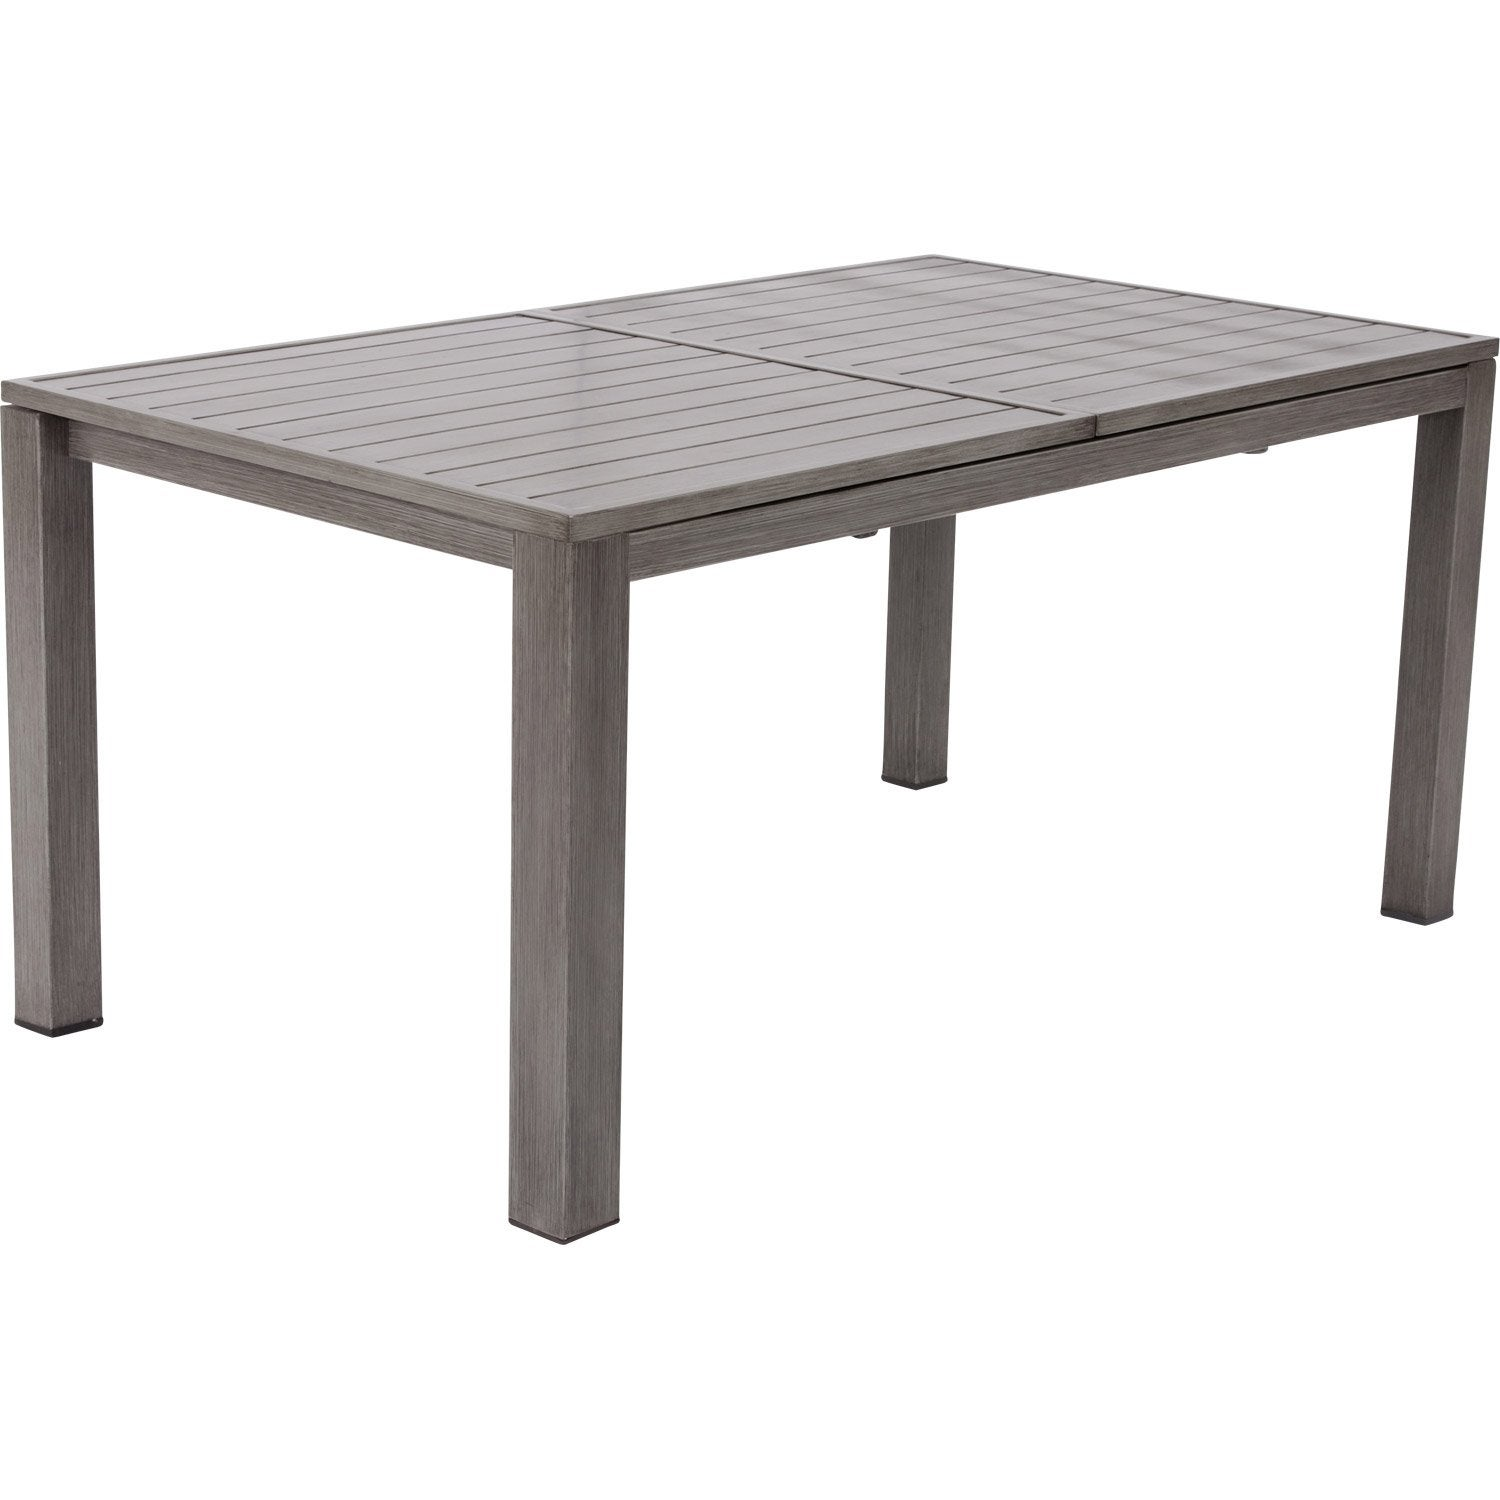 Table de jardin naterial antibes 220 rectangulaire gris - Table rabattable leroy merlin ...